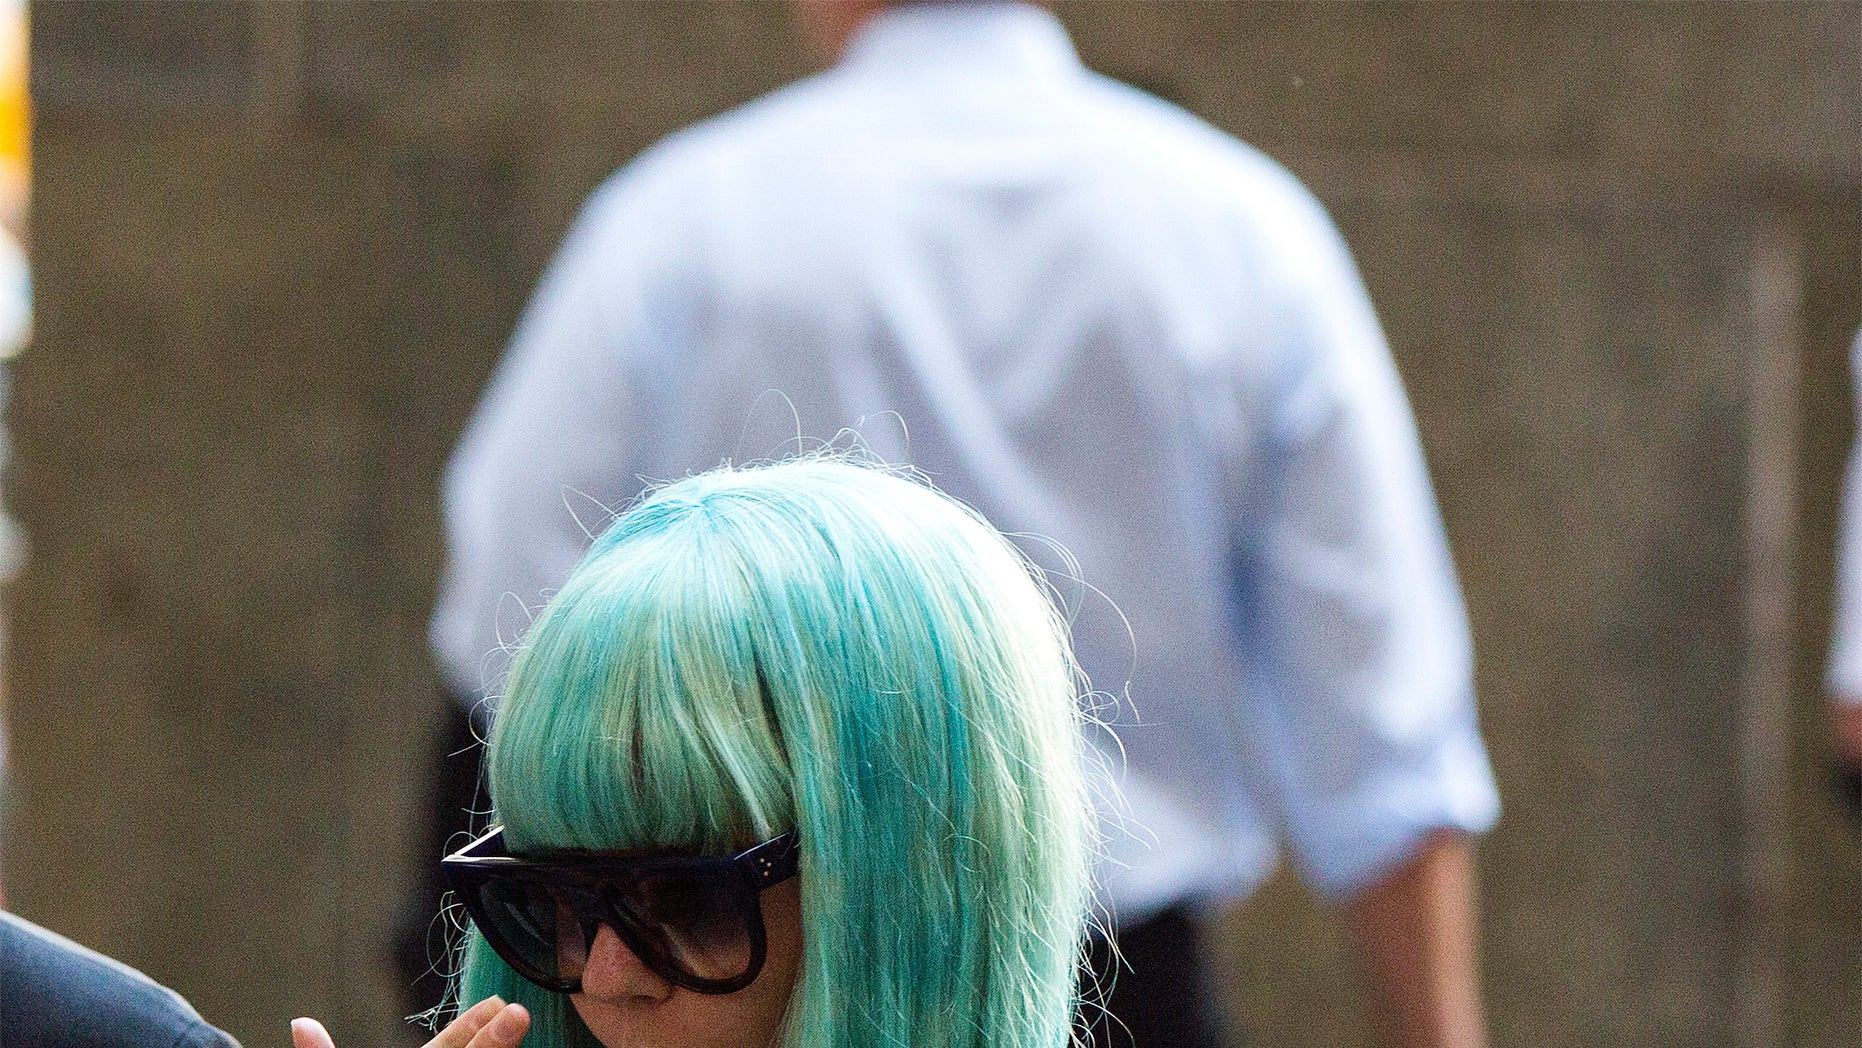 July 9, 2013. Amanda Bynes arrives for a court hearing at Manhattan Criminal Court in New York, July 9, 2013. Bynes is charged with reckless endangerment and attempted tampering with physical evidence.